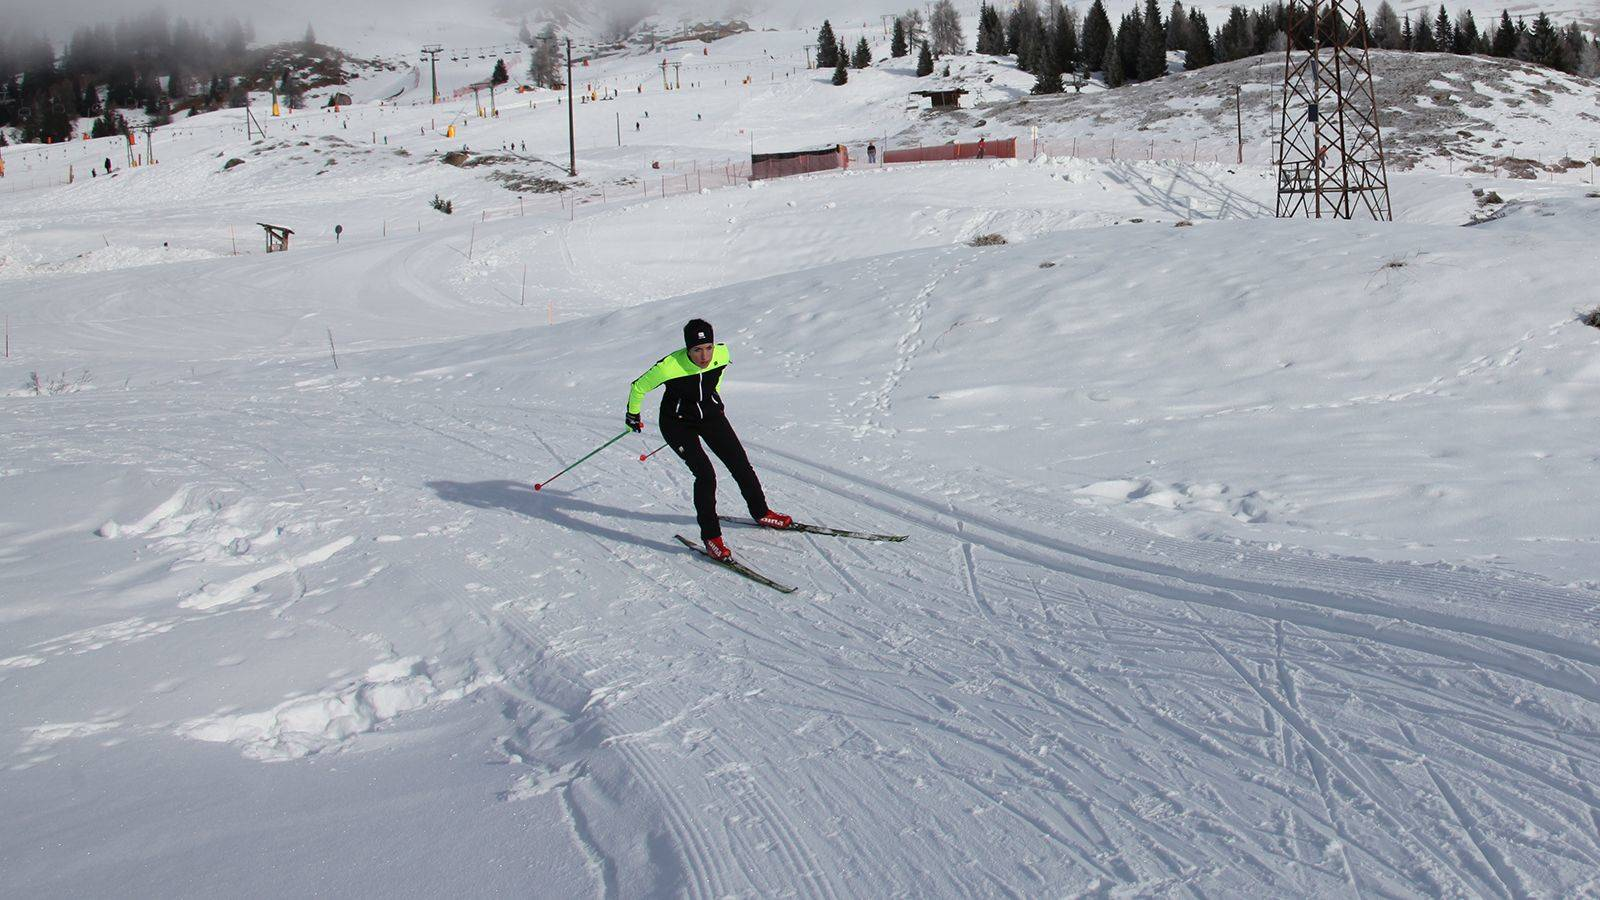 A girl faces the SuperNordicSkipass circuit at Passo San Pellegrino